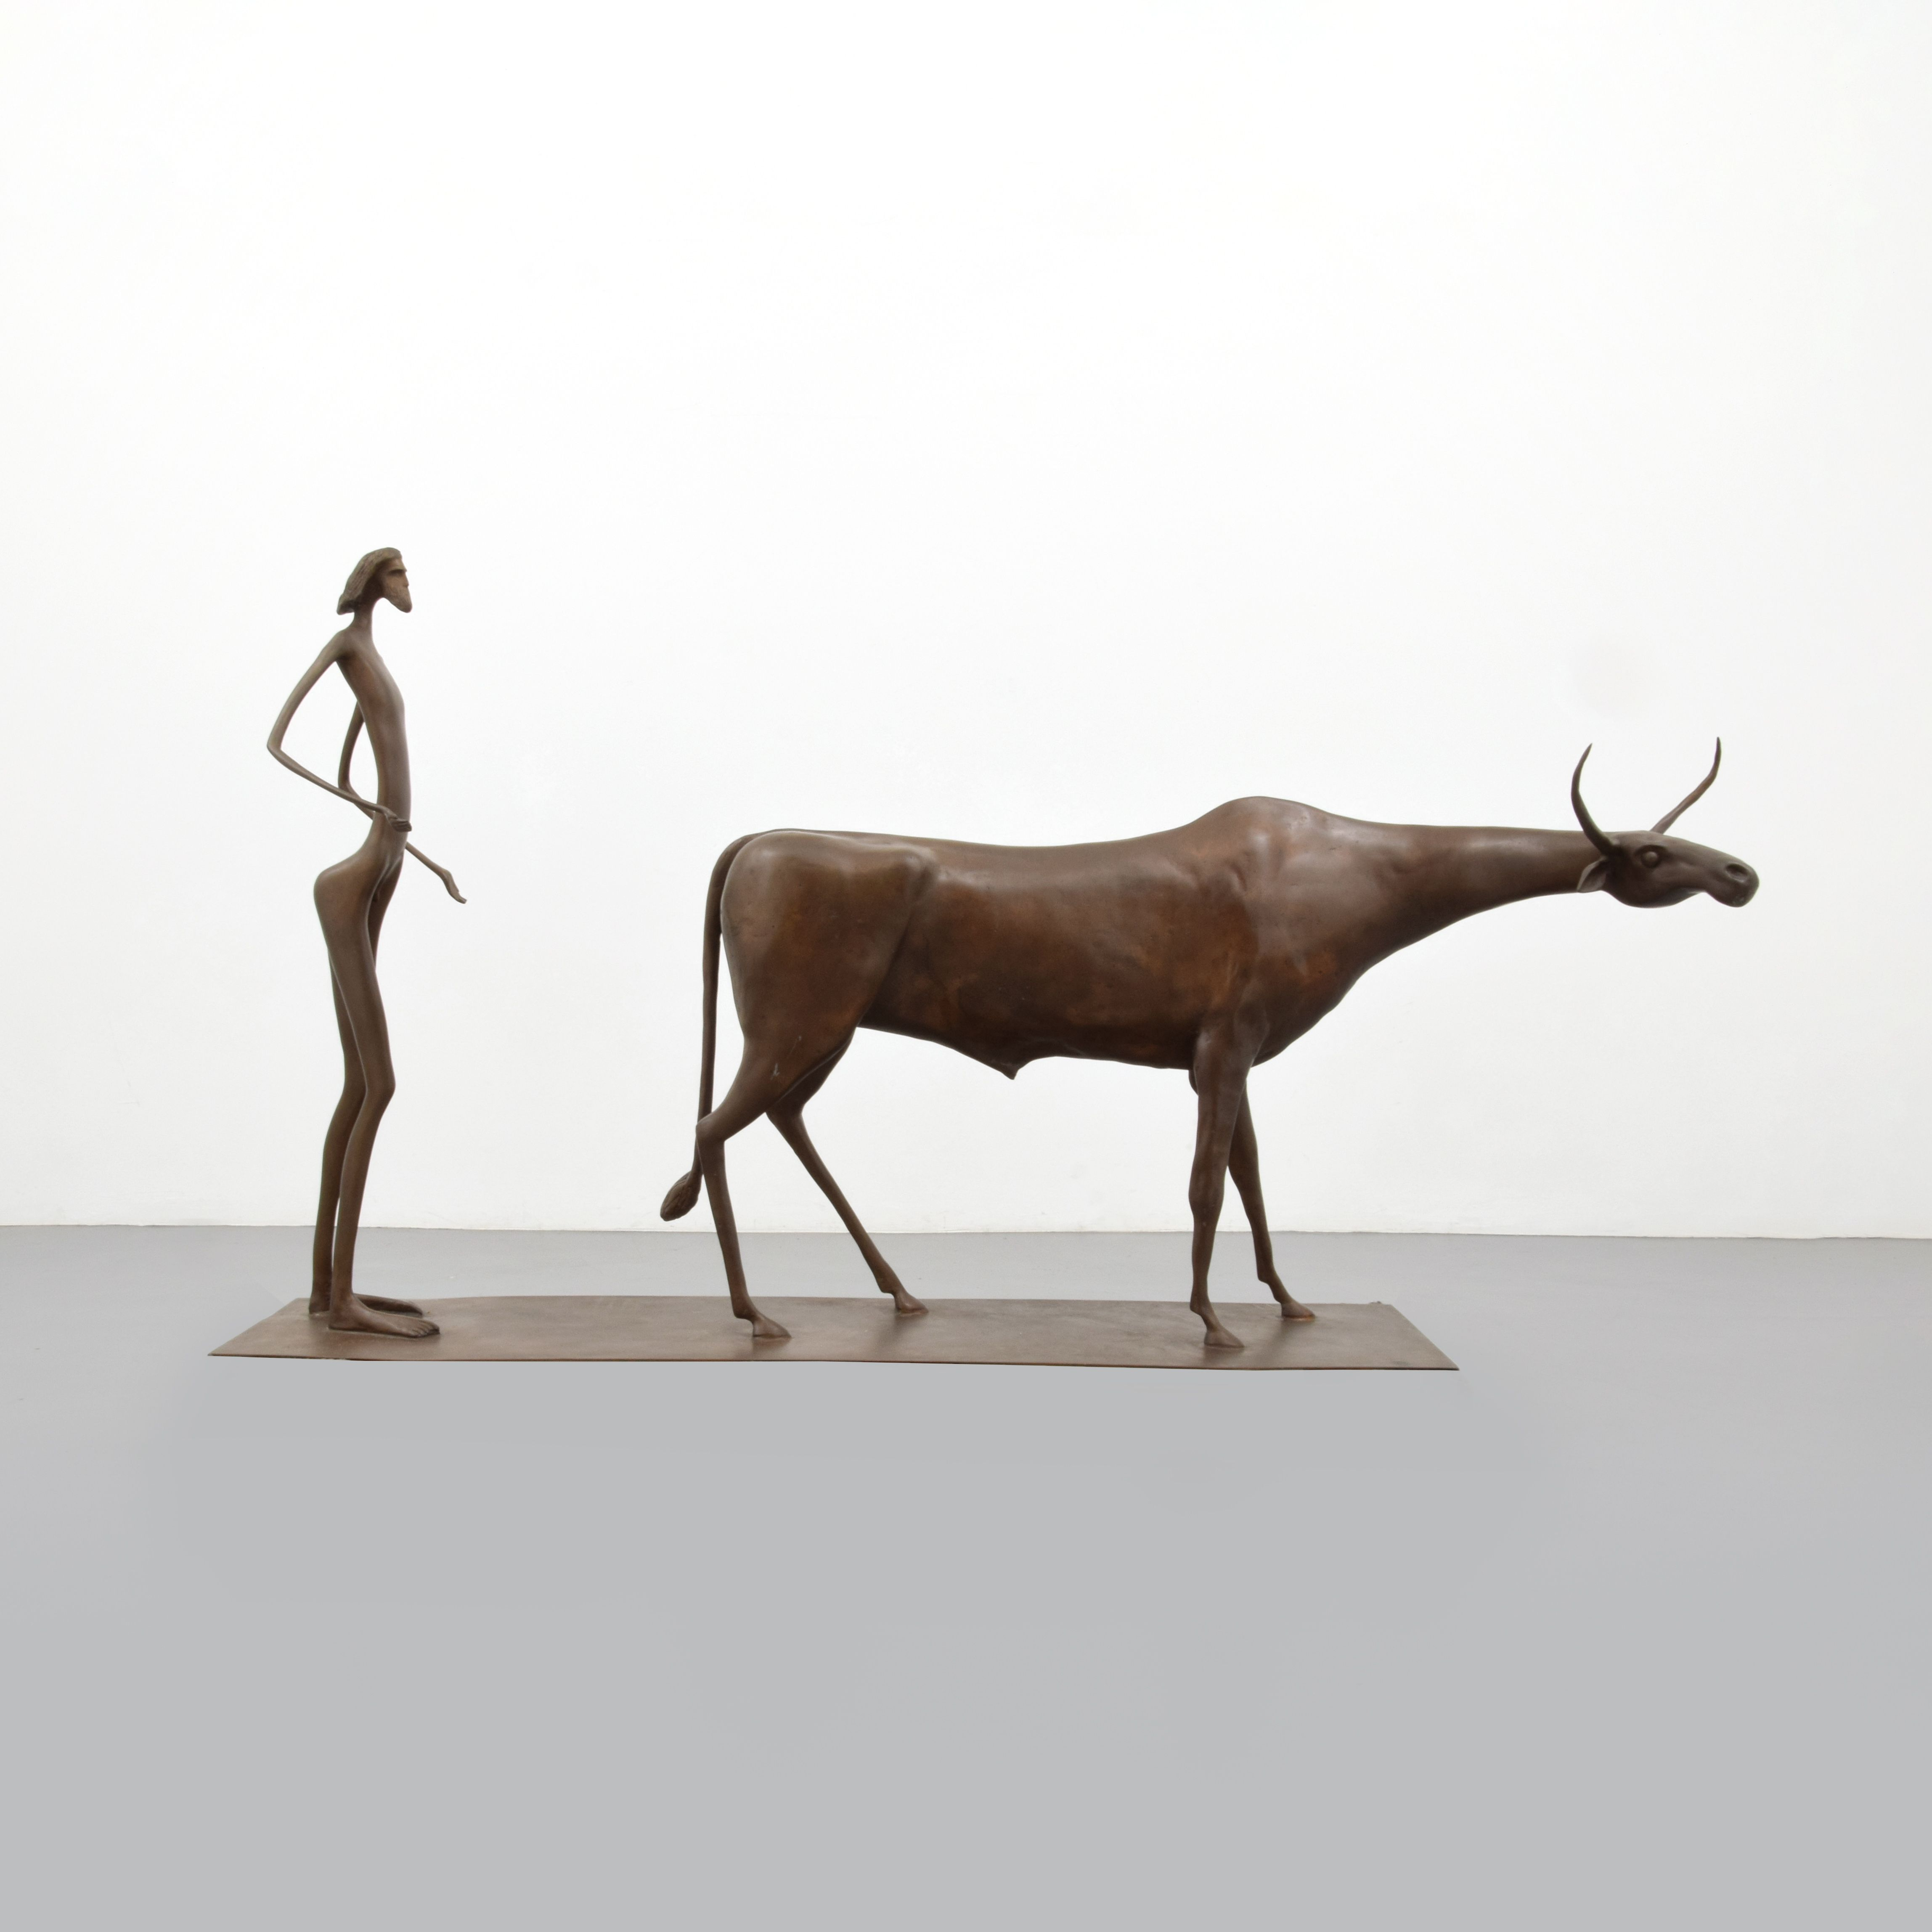 Monumental Itzik Asher Bronze Sculpture.  MARKINGS: signed; ed. 3/9; 1991.  Work is titled THE SHEPHERD. Provenance: Private Estate, Coconut Grove, Florida   Private Collection, Wilton Manors, Florida.